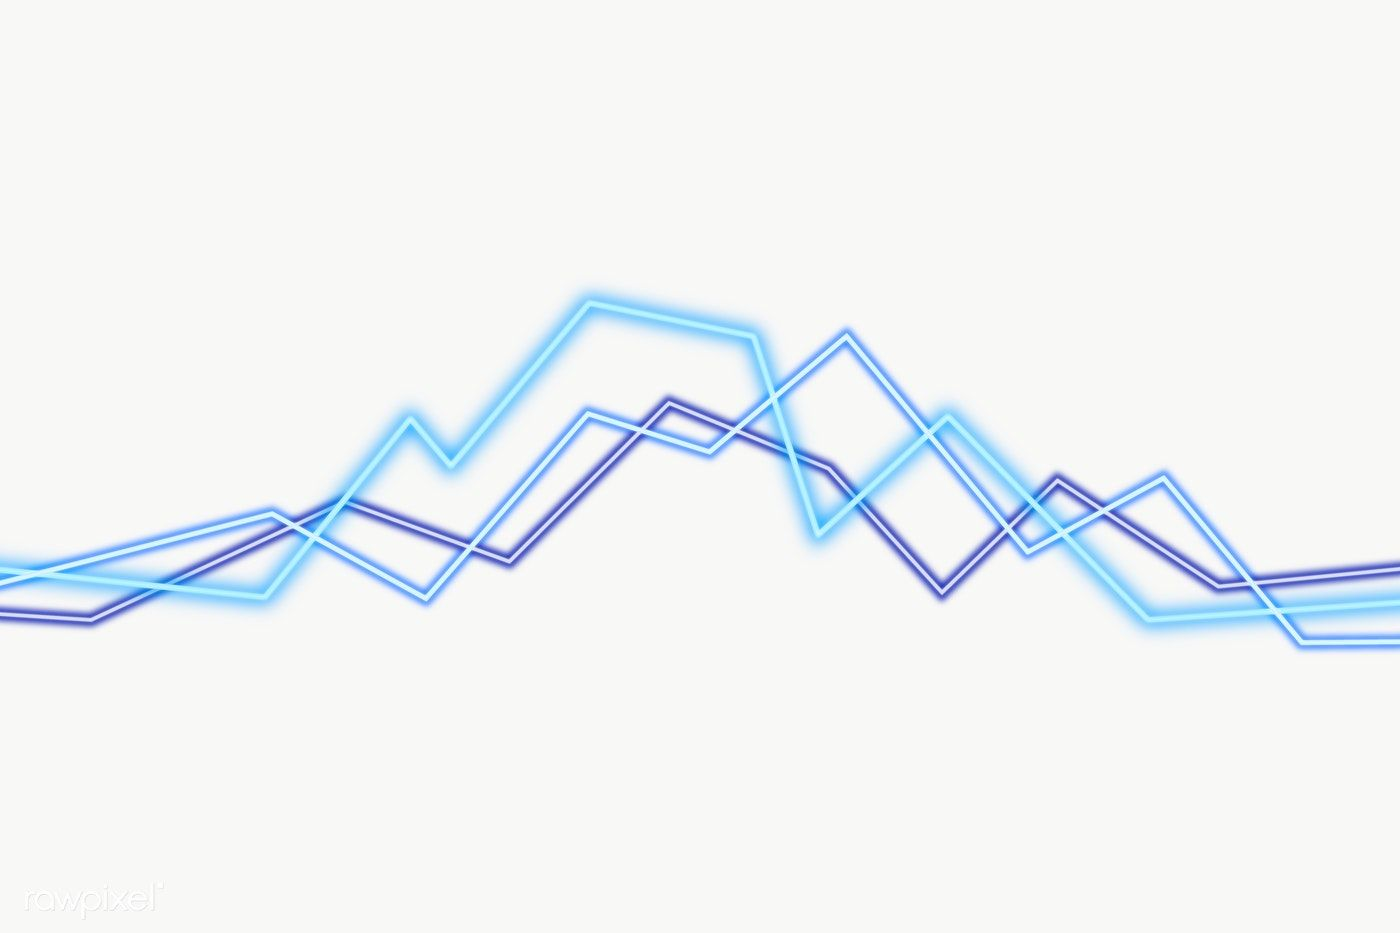 Neon Blue Graphic Lines Background Layer Free Image By Rawpixel Com Aum Line Background Backdrops Backgrounds Background